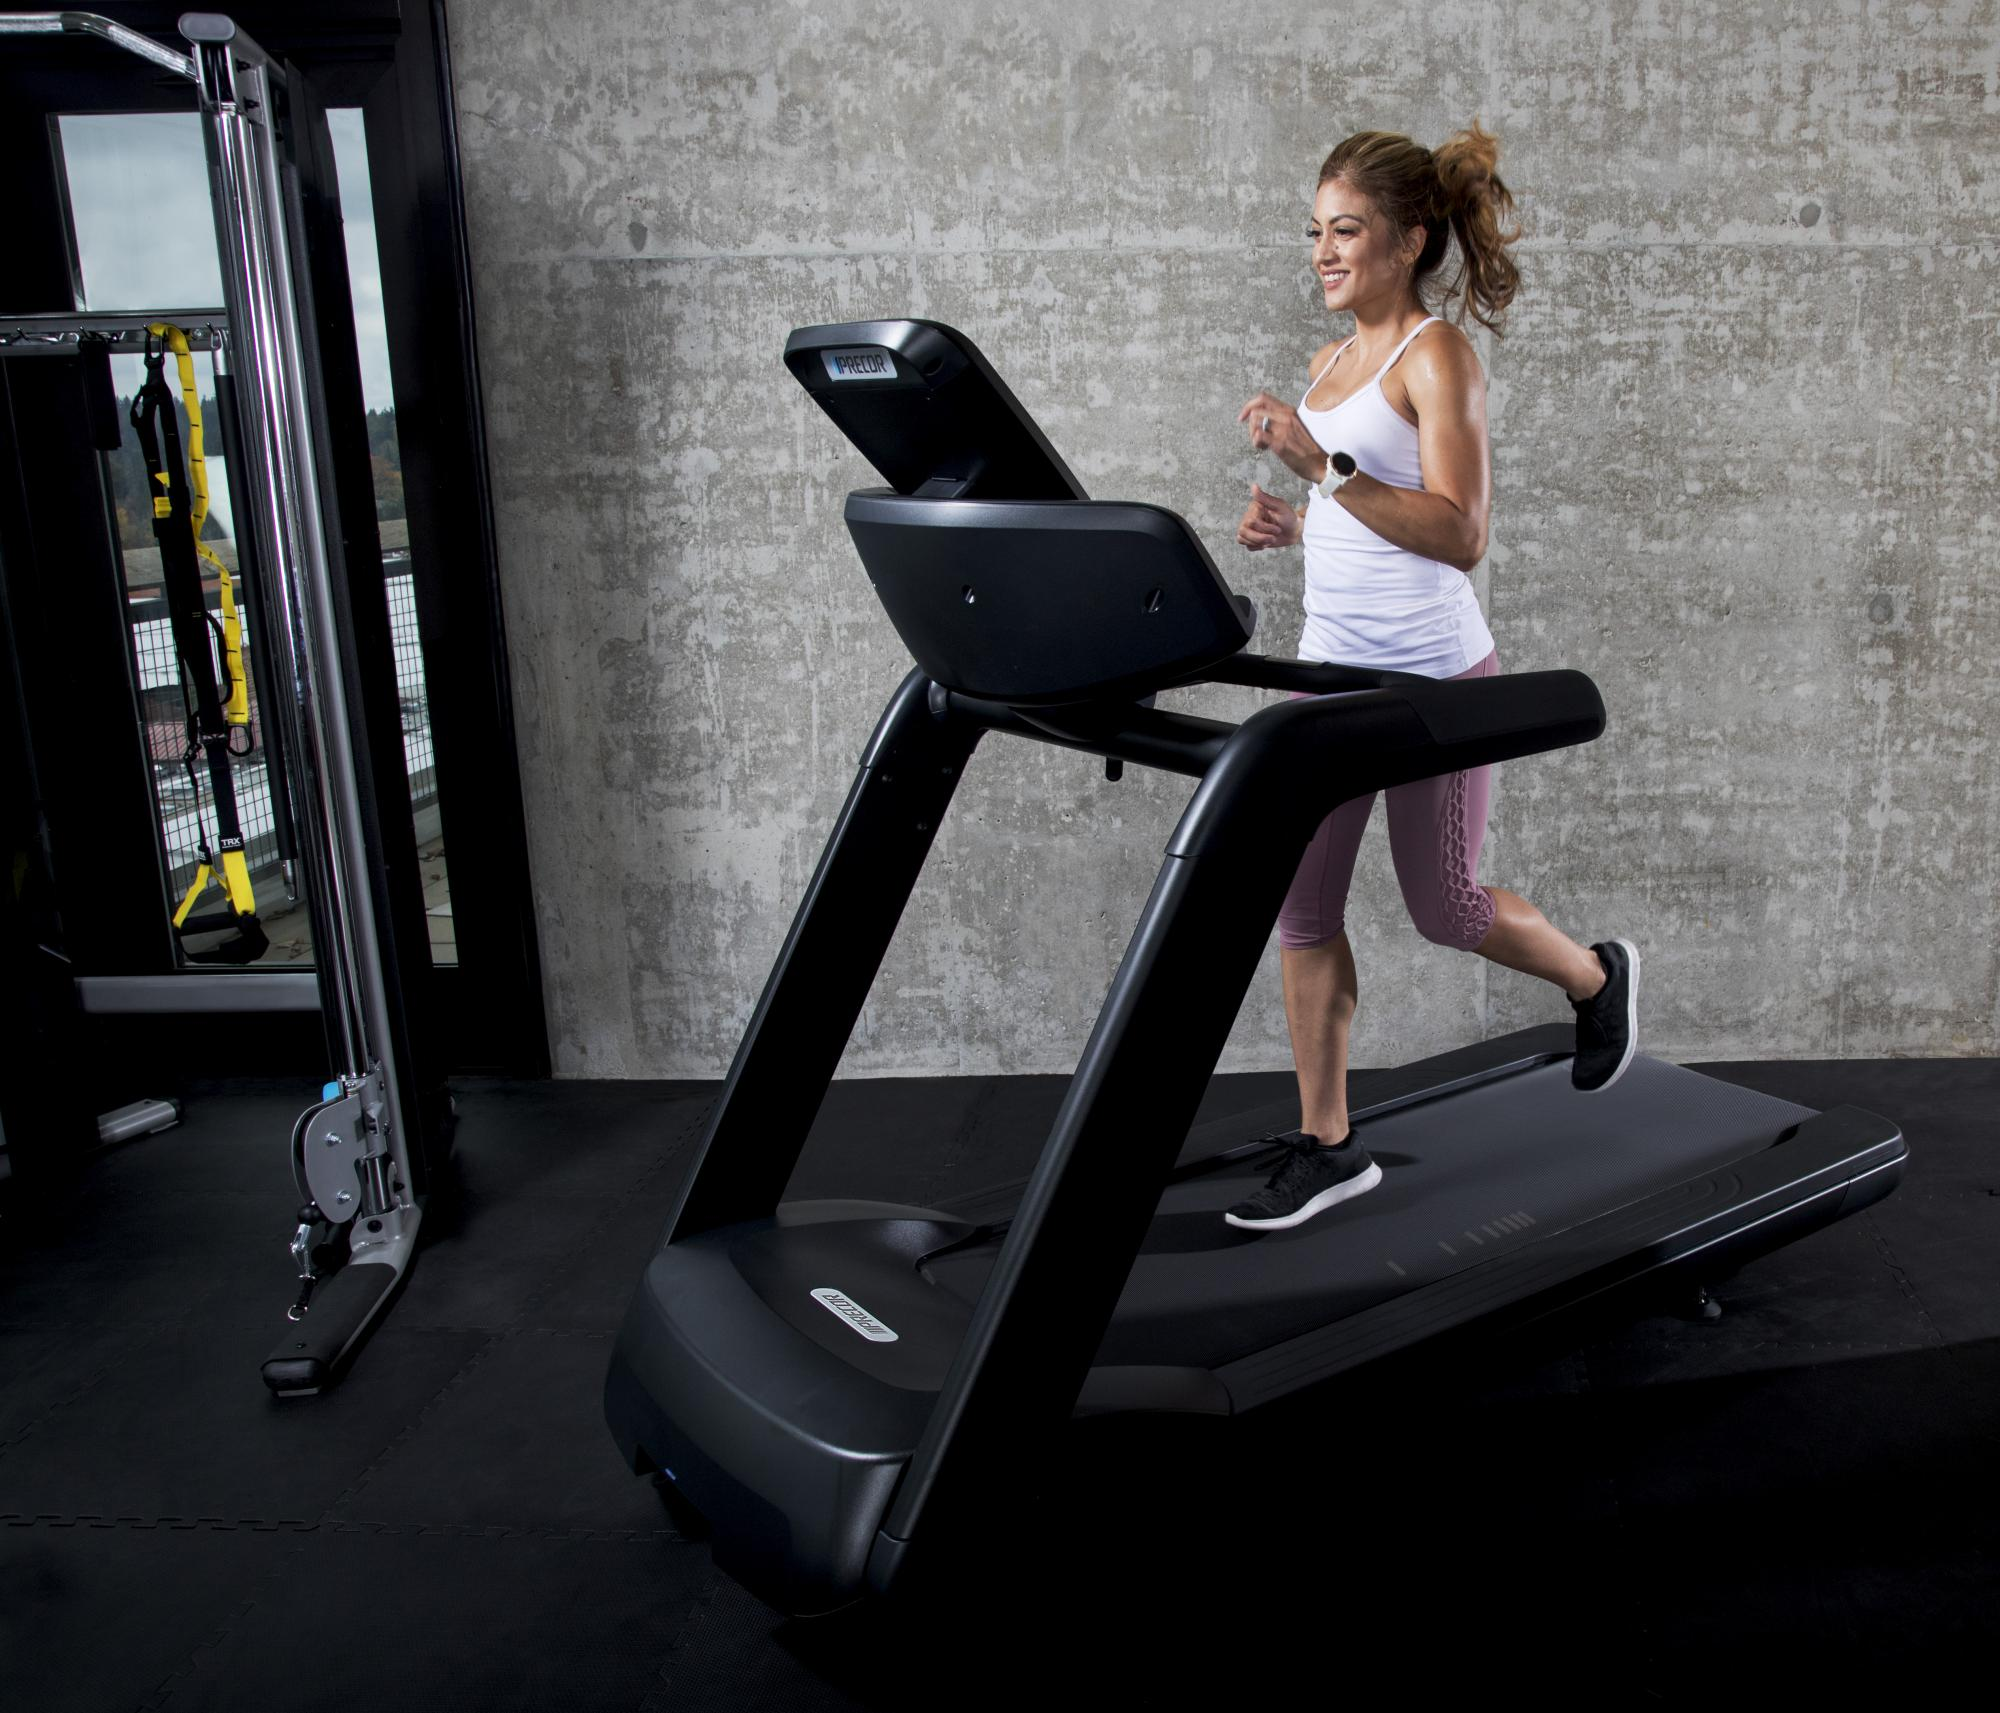 ca3f341b7dd Precor Home Fitness - Exercise Equipment - Best Home Exercise ...